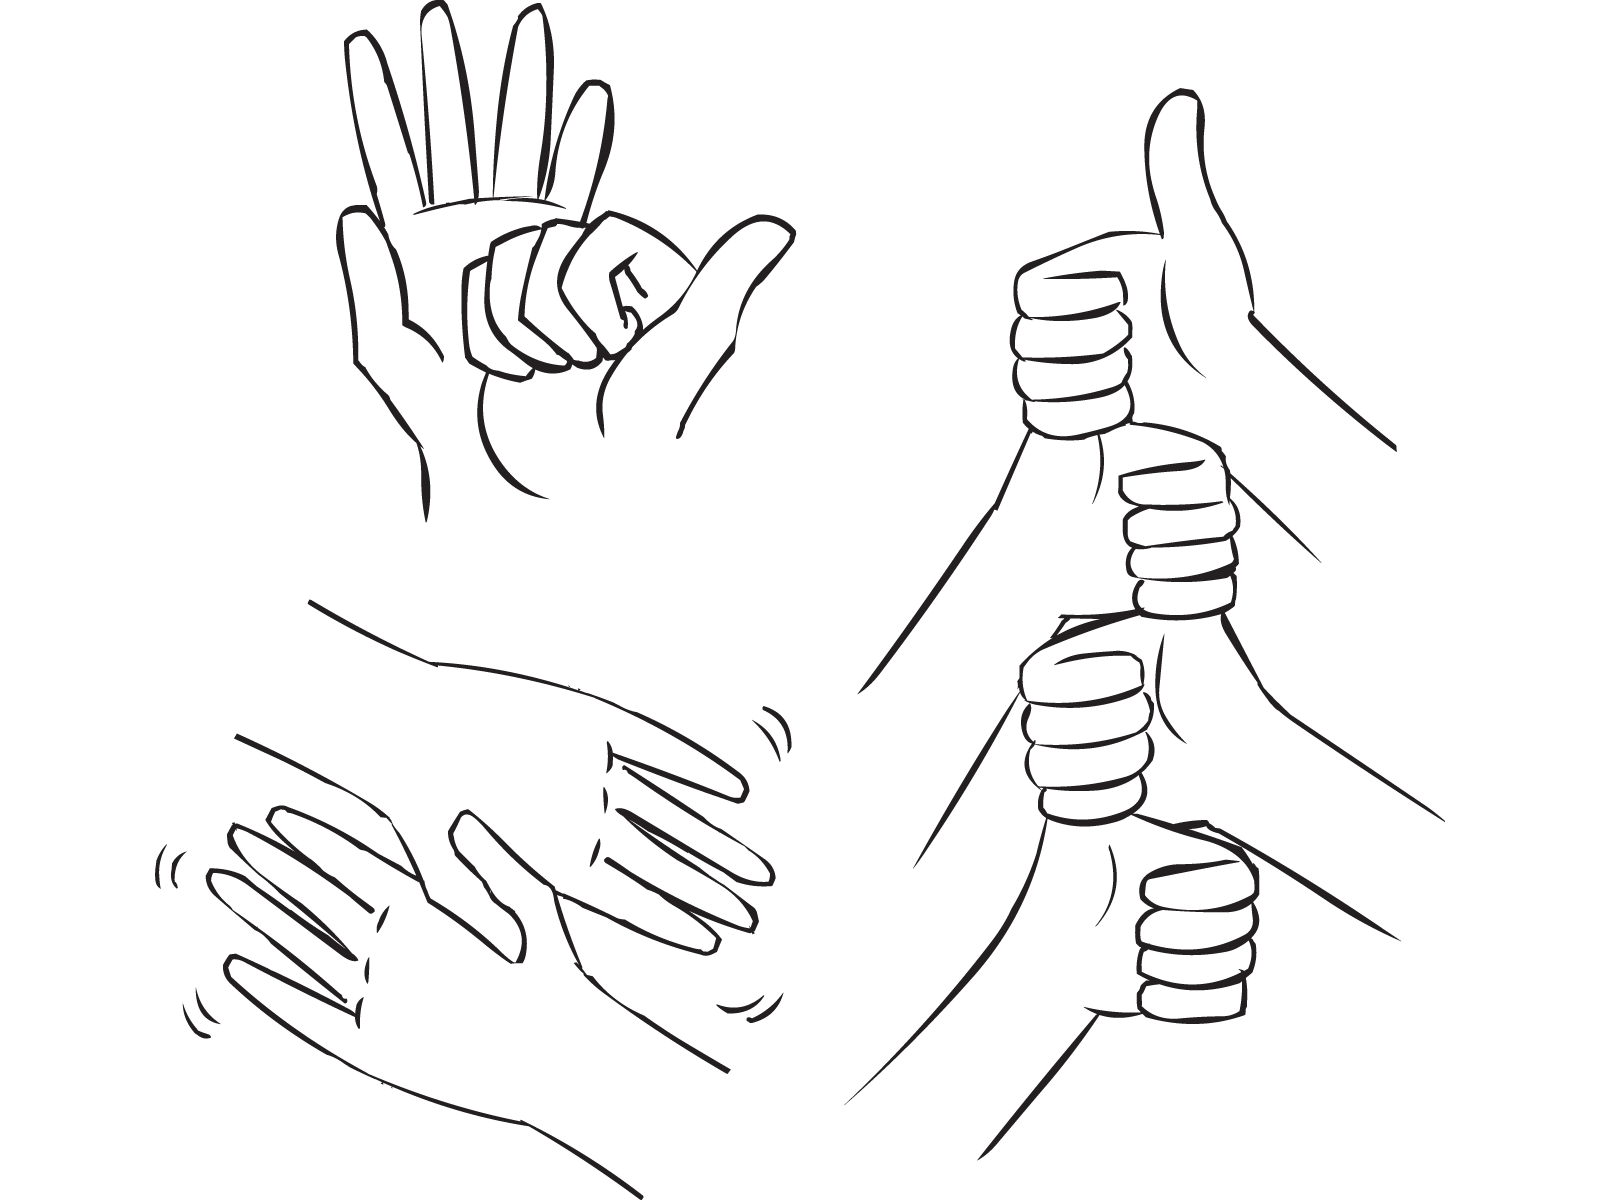 Thumb clipart sketch. Handshake drawing at getdrawings